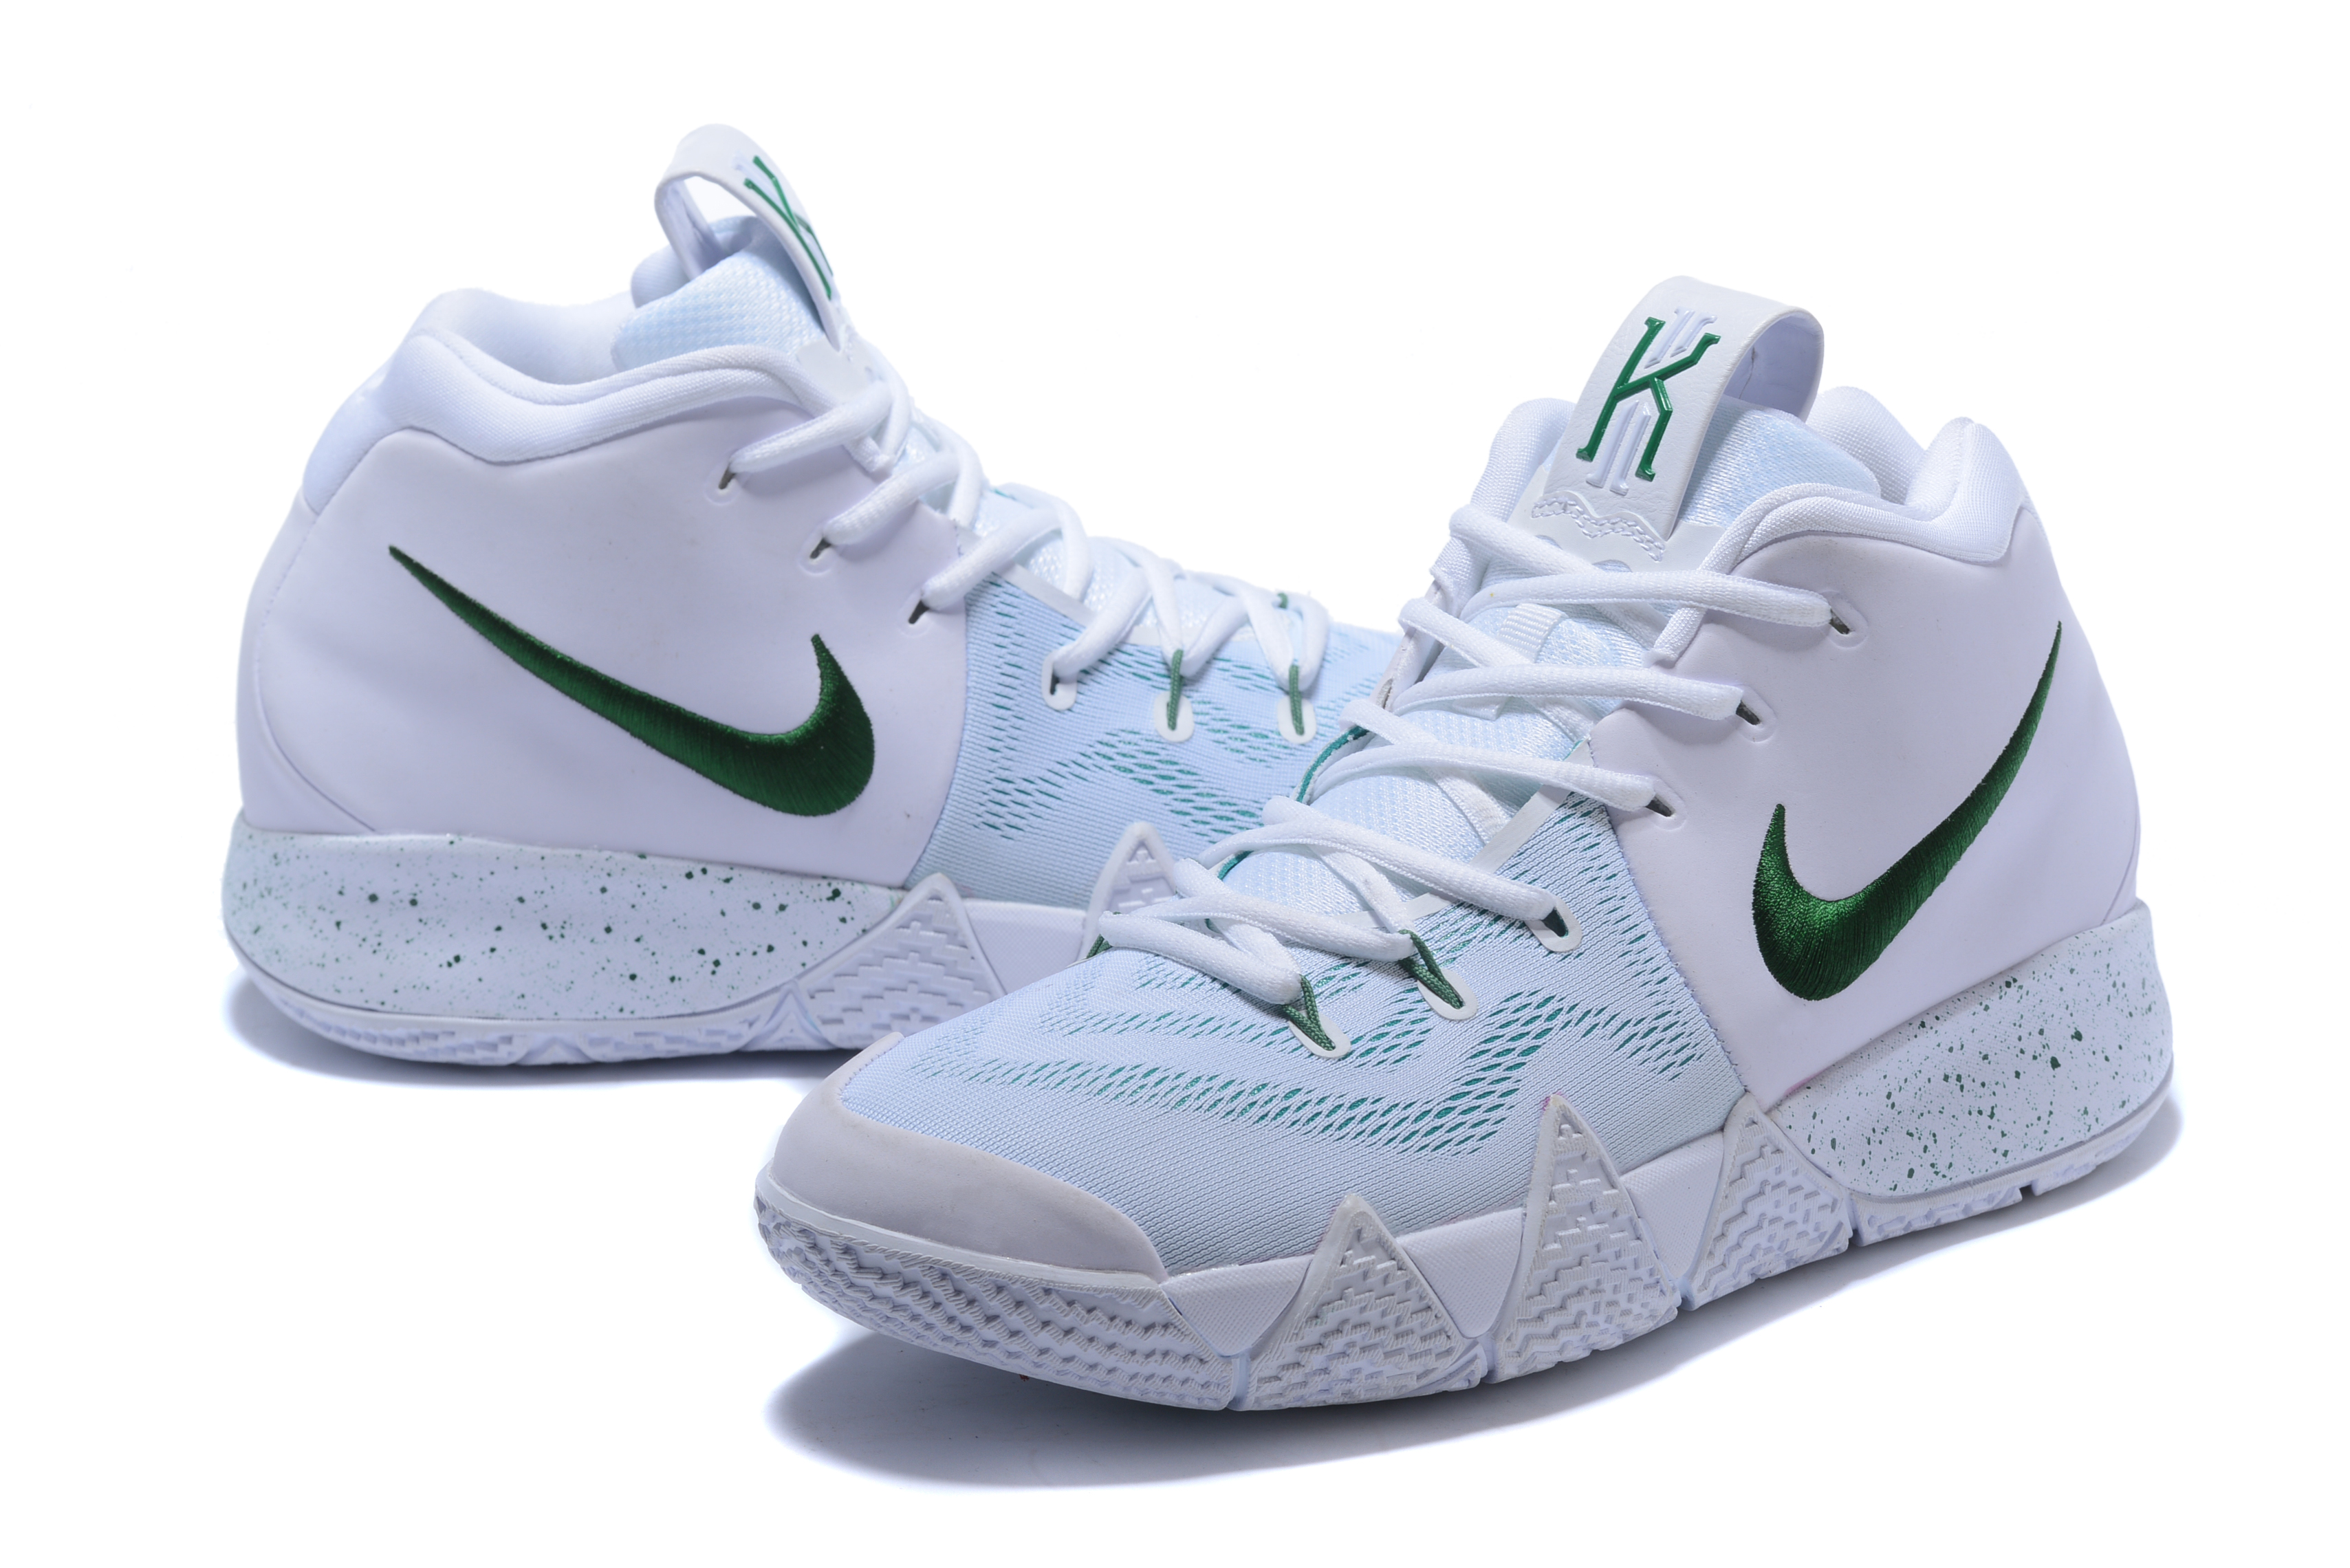 2018 Nike Kyrie Irving 4 White Green Shoes